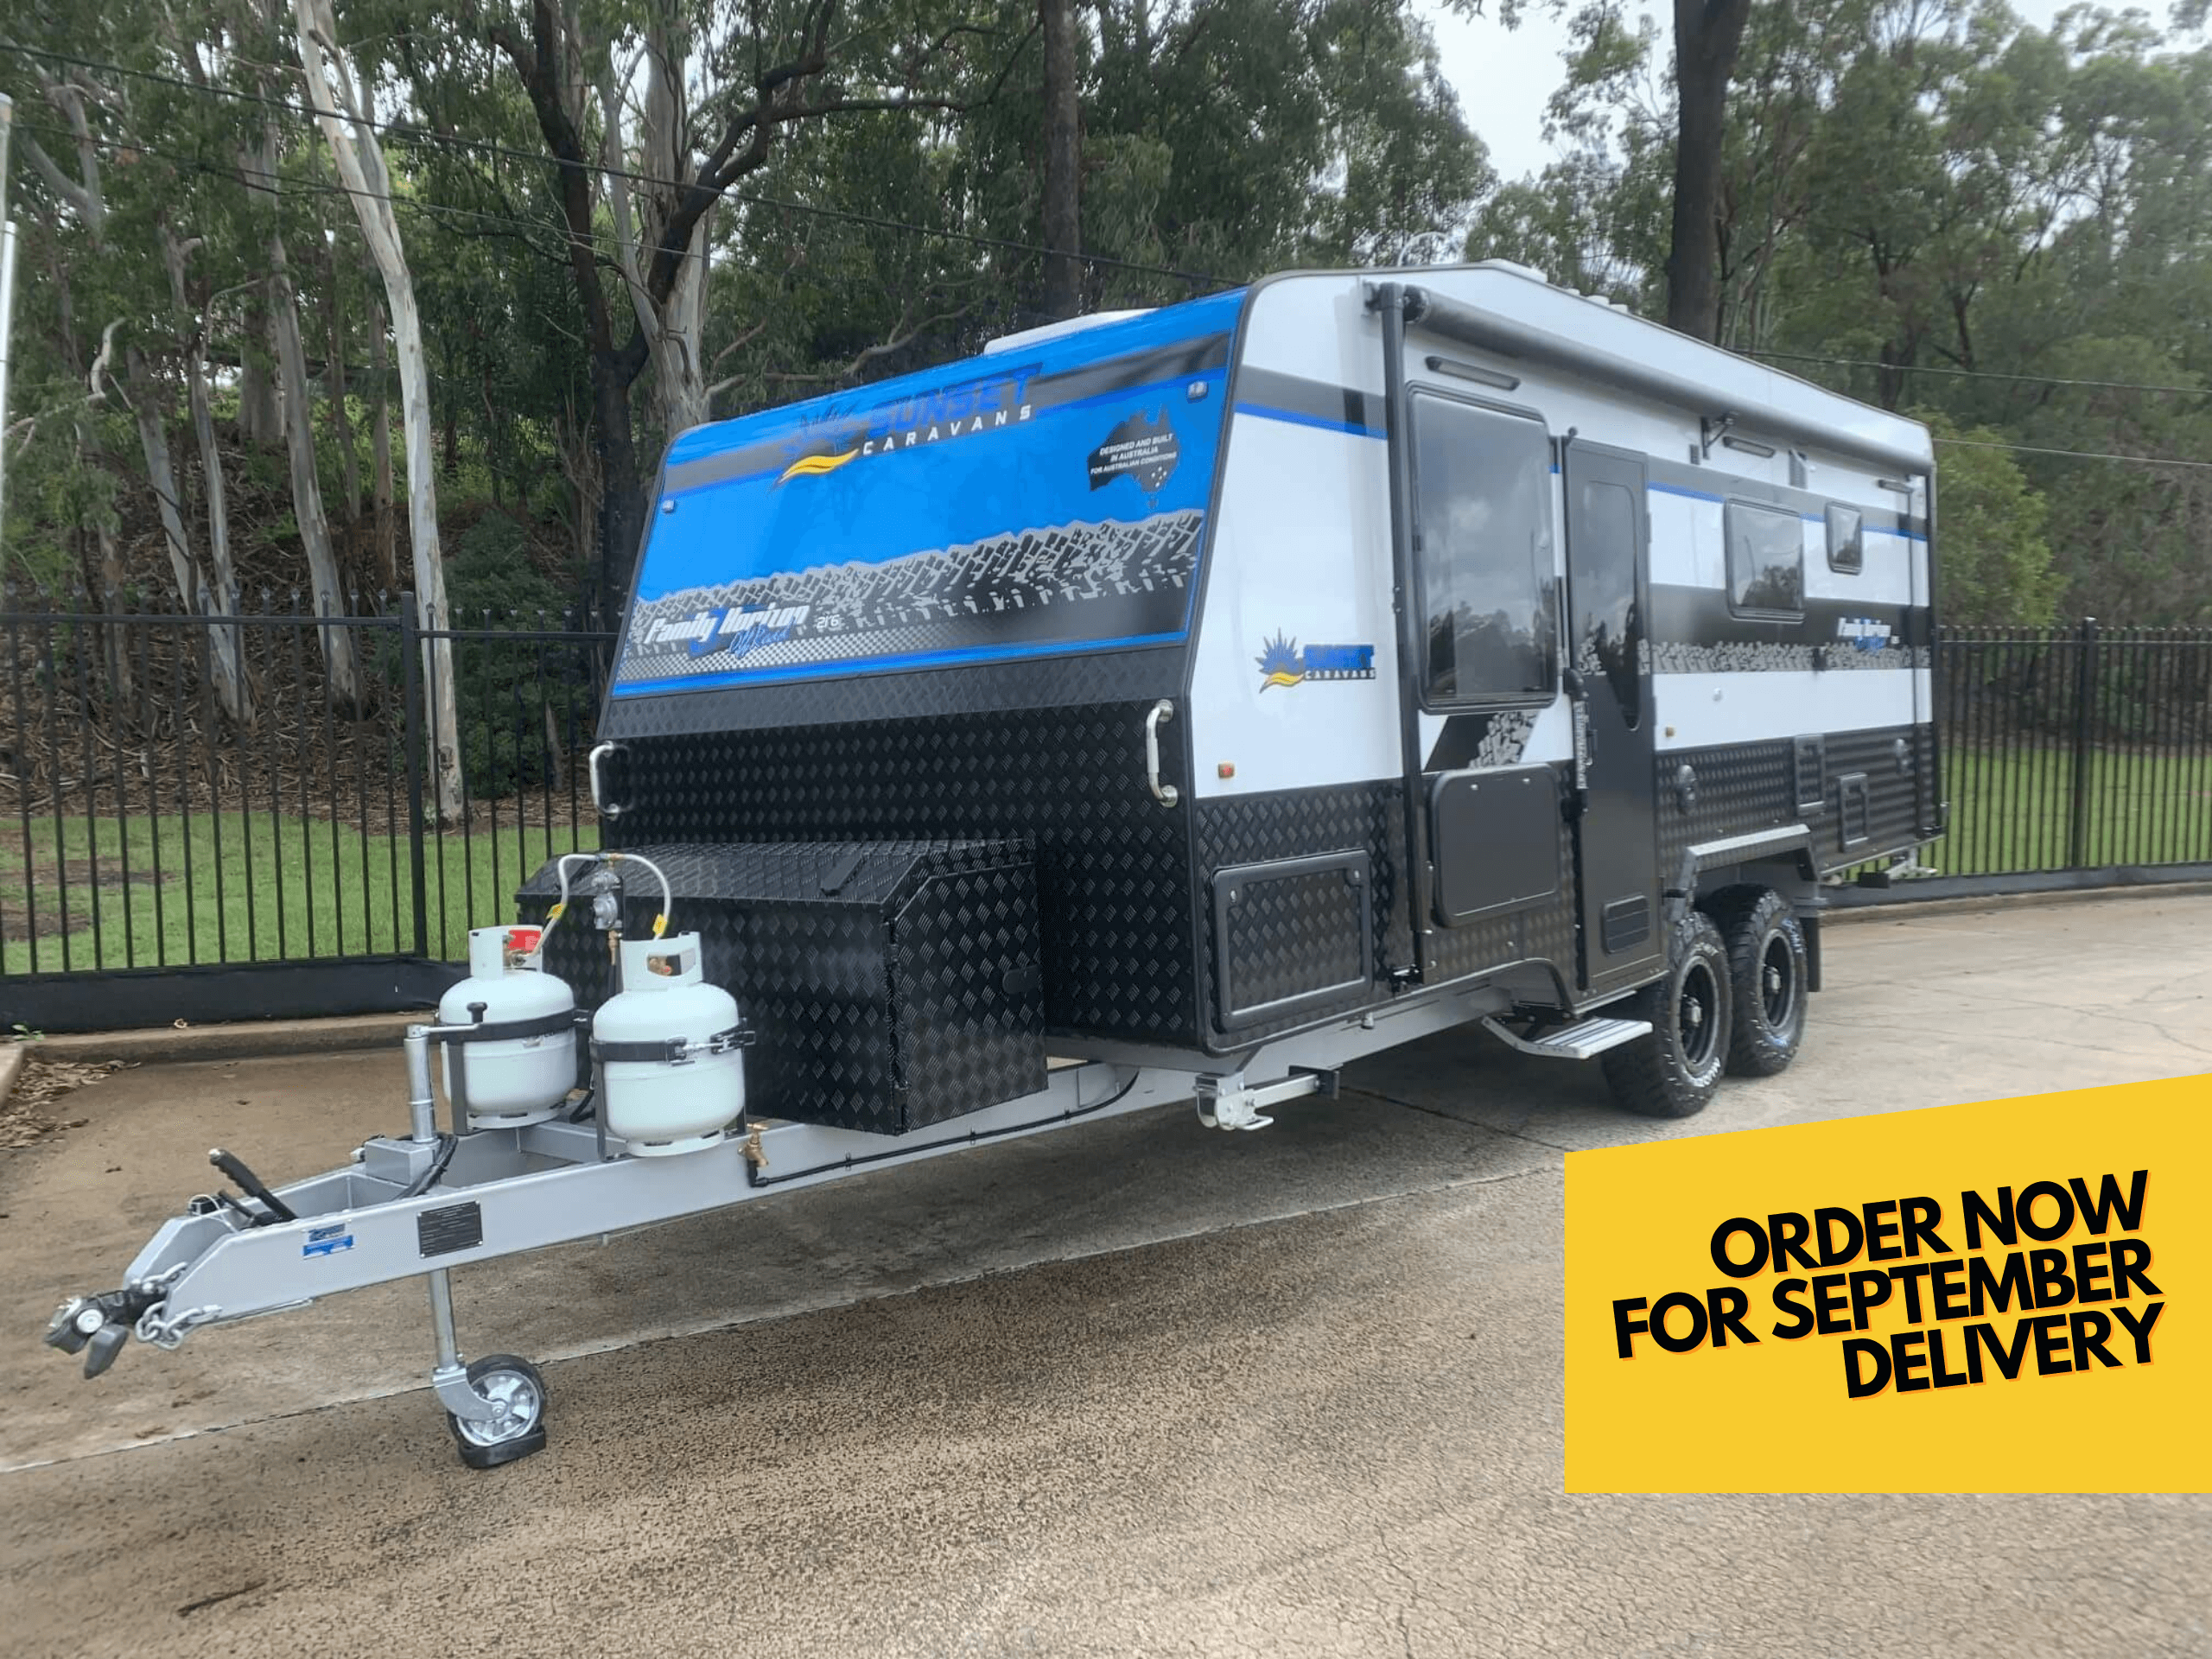 Sunset Off-Road Family Horizon 21ft6 Triple Bunk Van With OZ Trekker Coil Off-Road Suspension